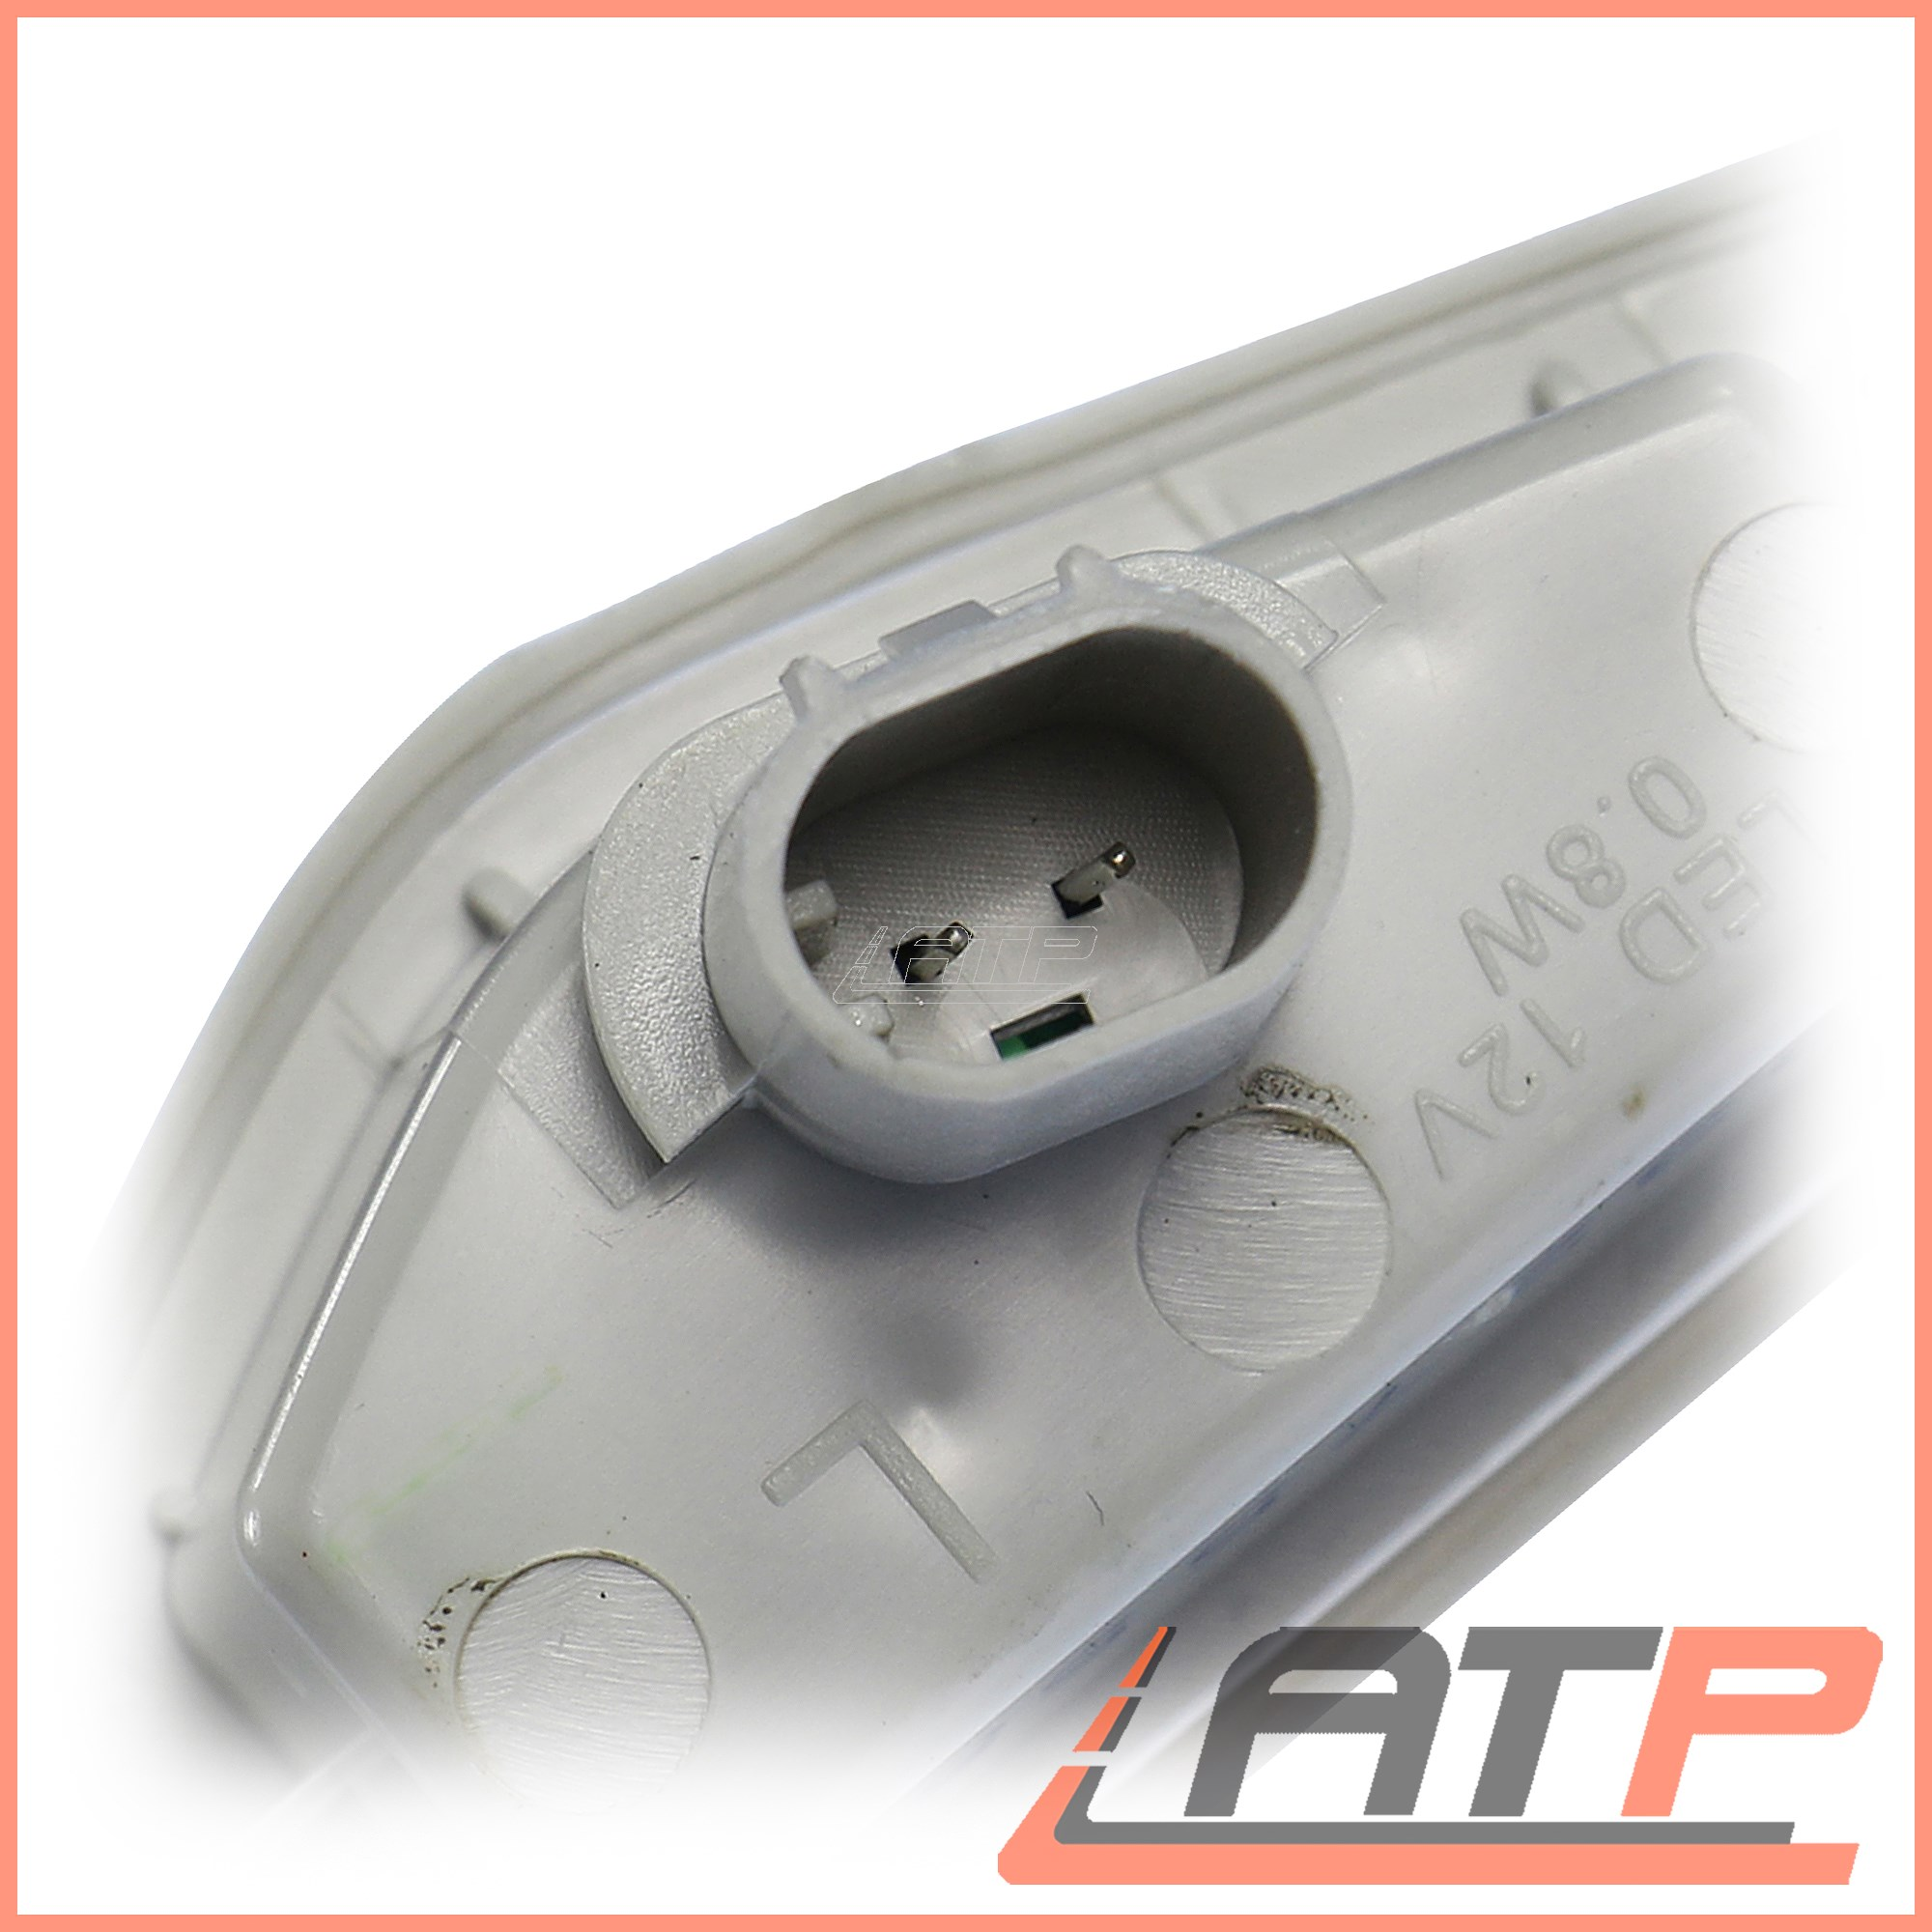 2X-LED-INDICATOR-TURN-SIGNAL-SIDE-REPEAT-LEFT-RIGHT-BMW-3-SERIES-E46 thumbnail 4